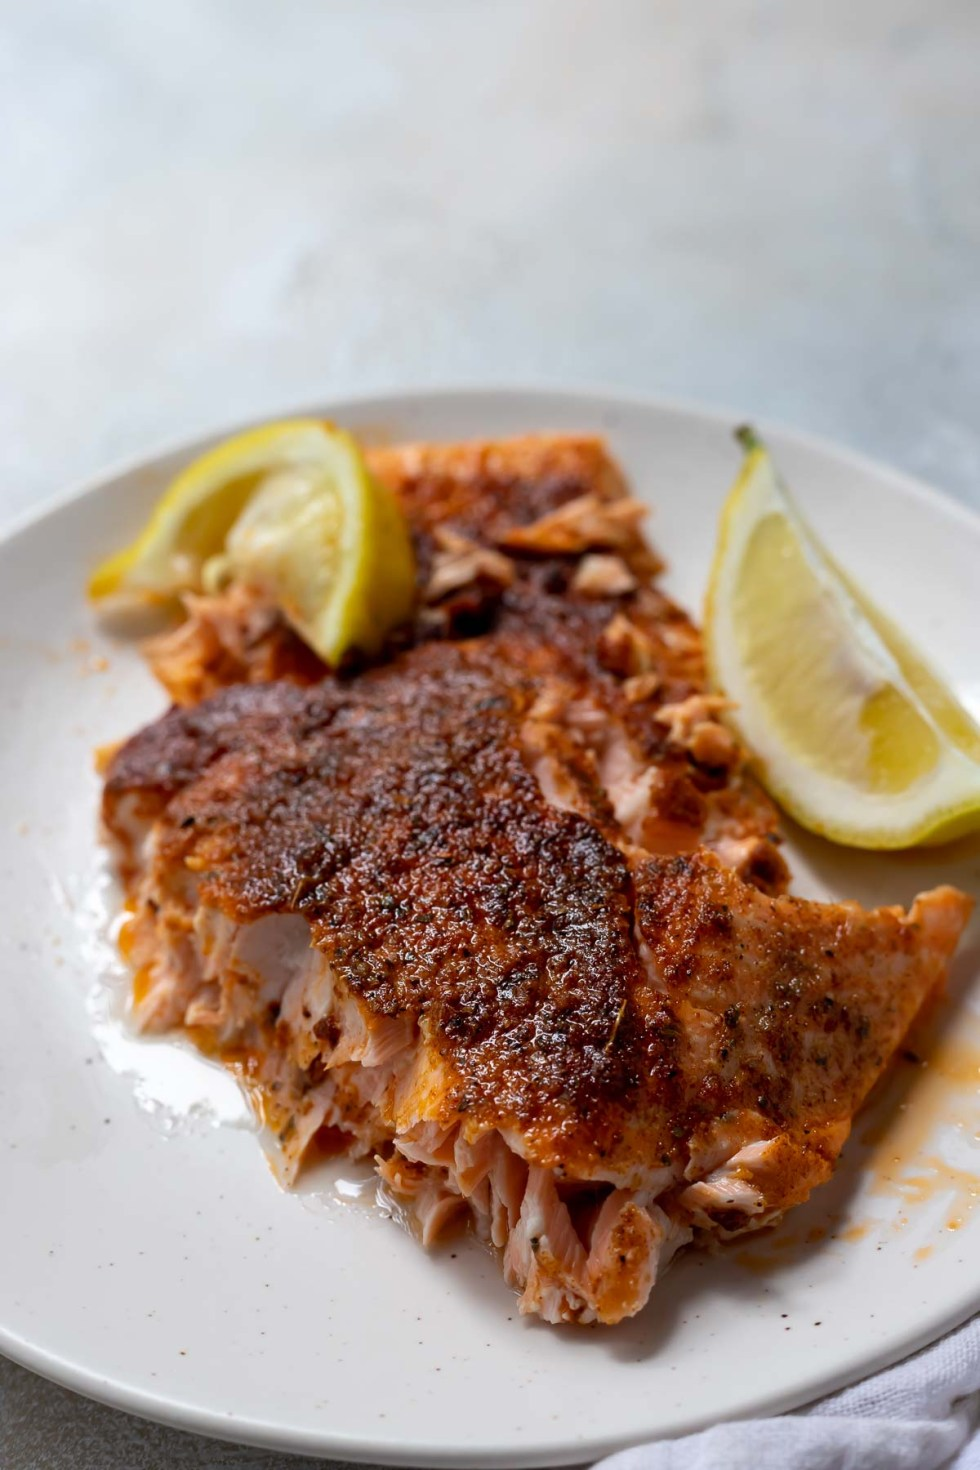 piece of blackened salmon served on a white plate with lemon wedges